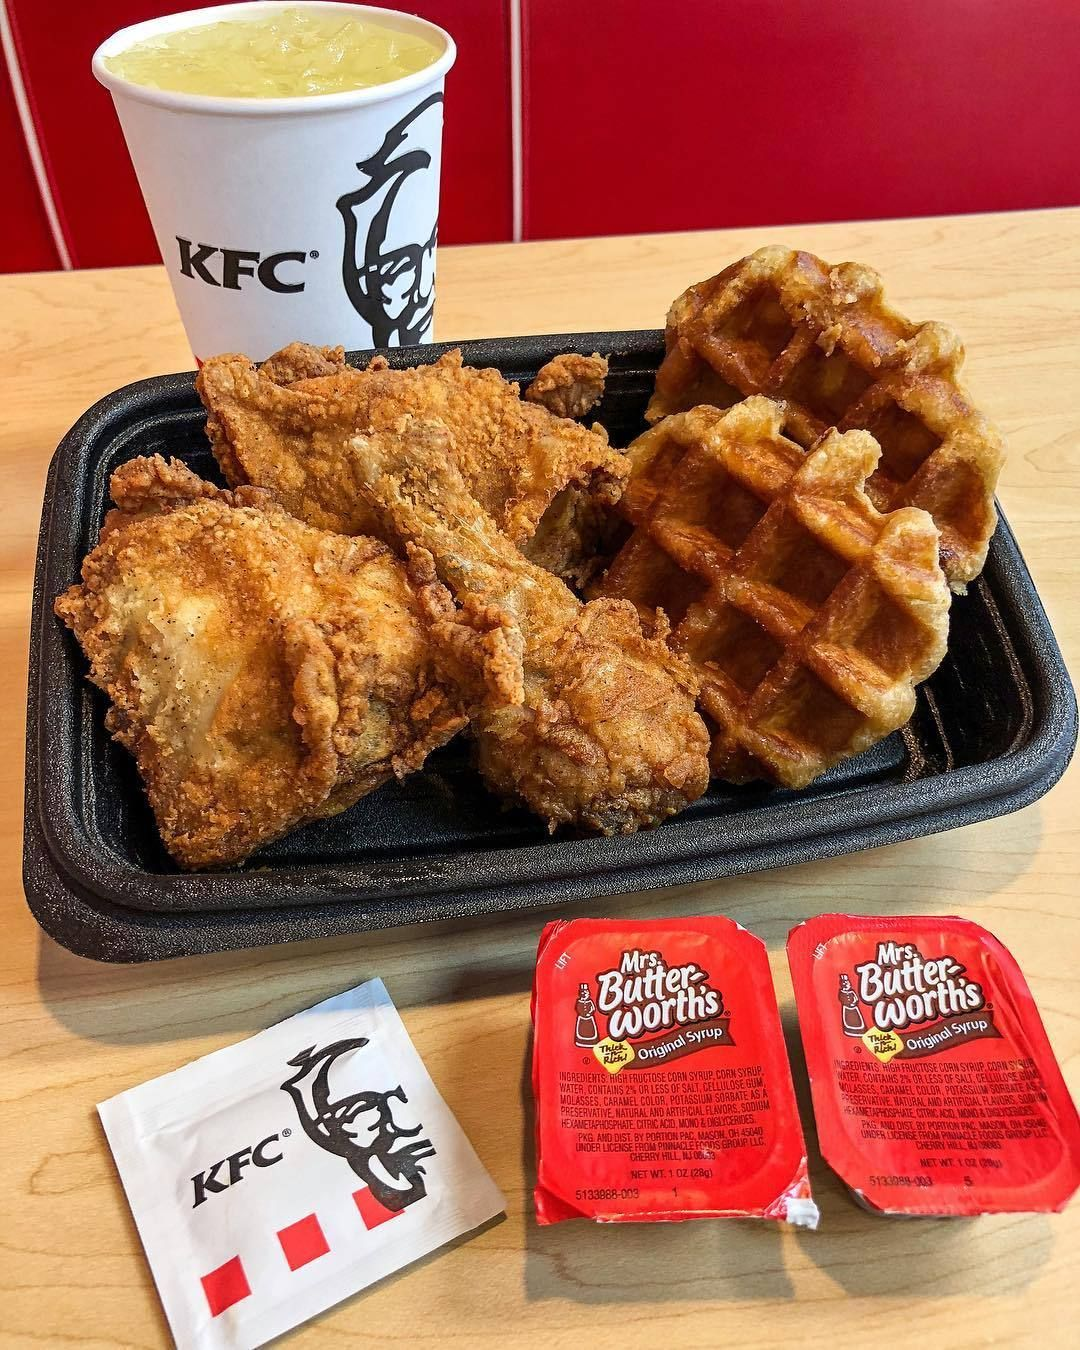 Chicken And Waffles From Kfc Source Food Food Cravings